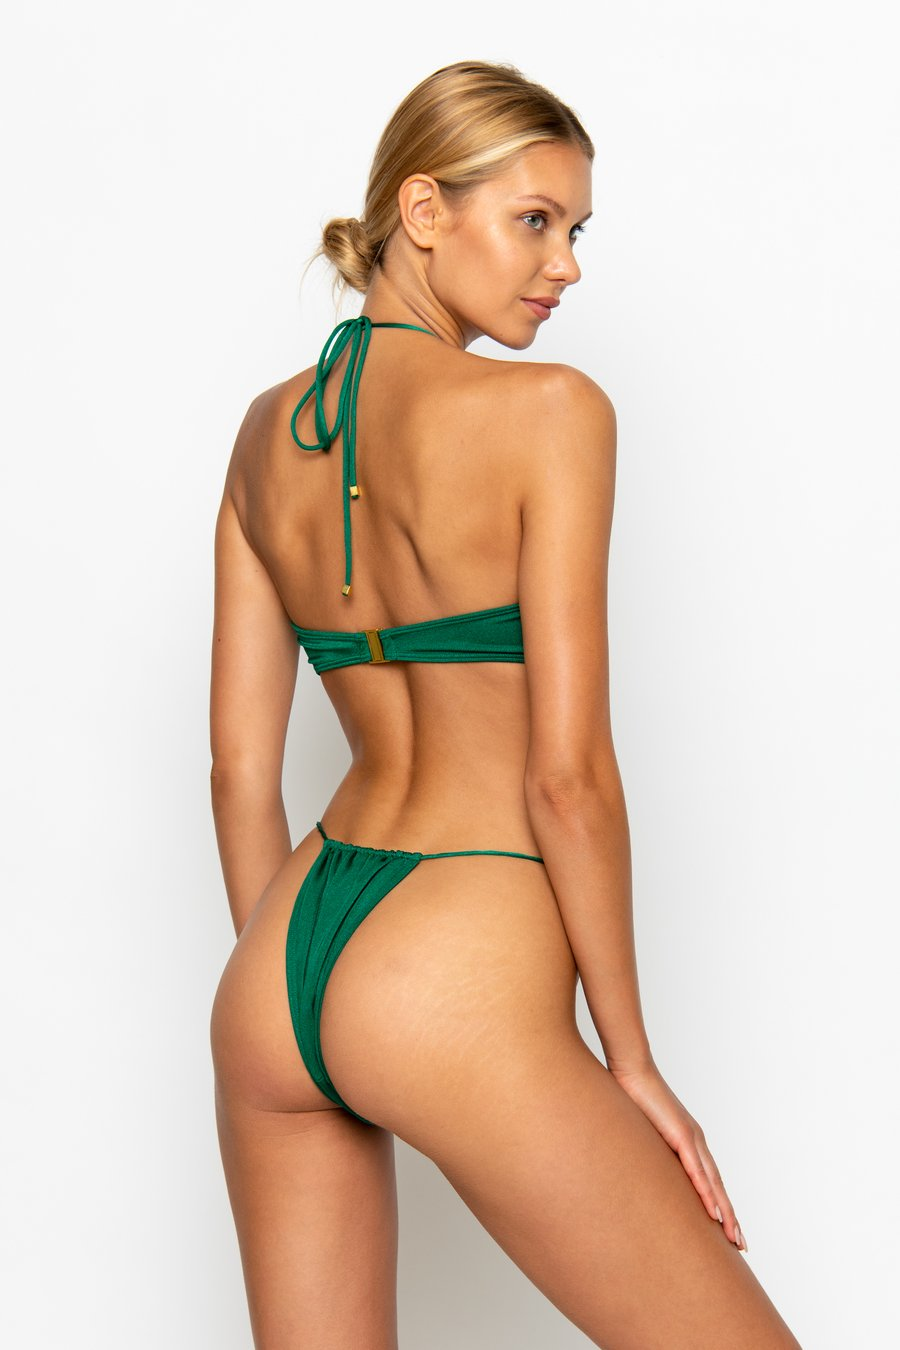 NAOMI Emerald - Tie Side Bikini Bottoms by Sommer Swim, available on sommerswim.com for $69 Bella Hadid Shorts SIMILAR PRODUCT